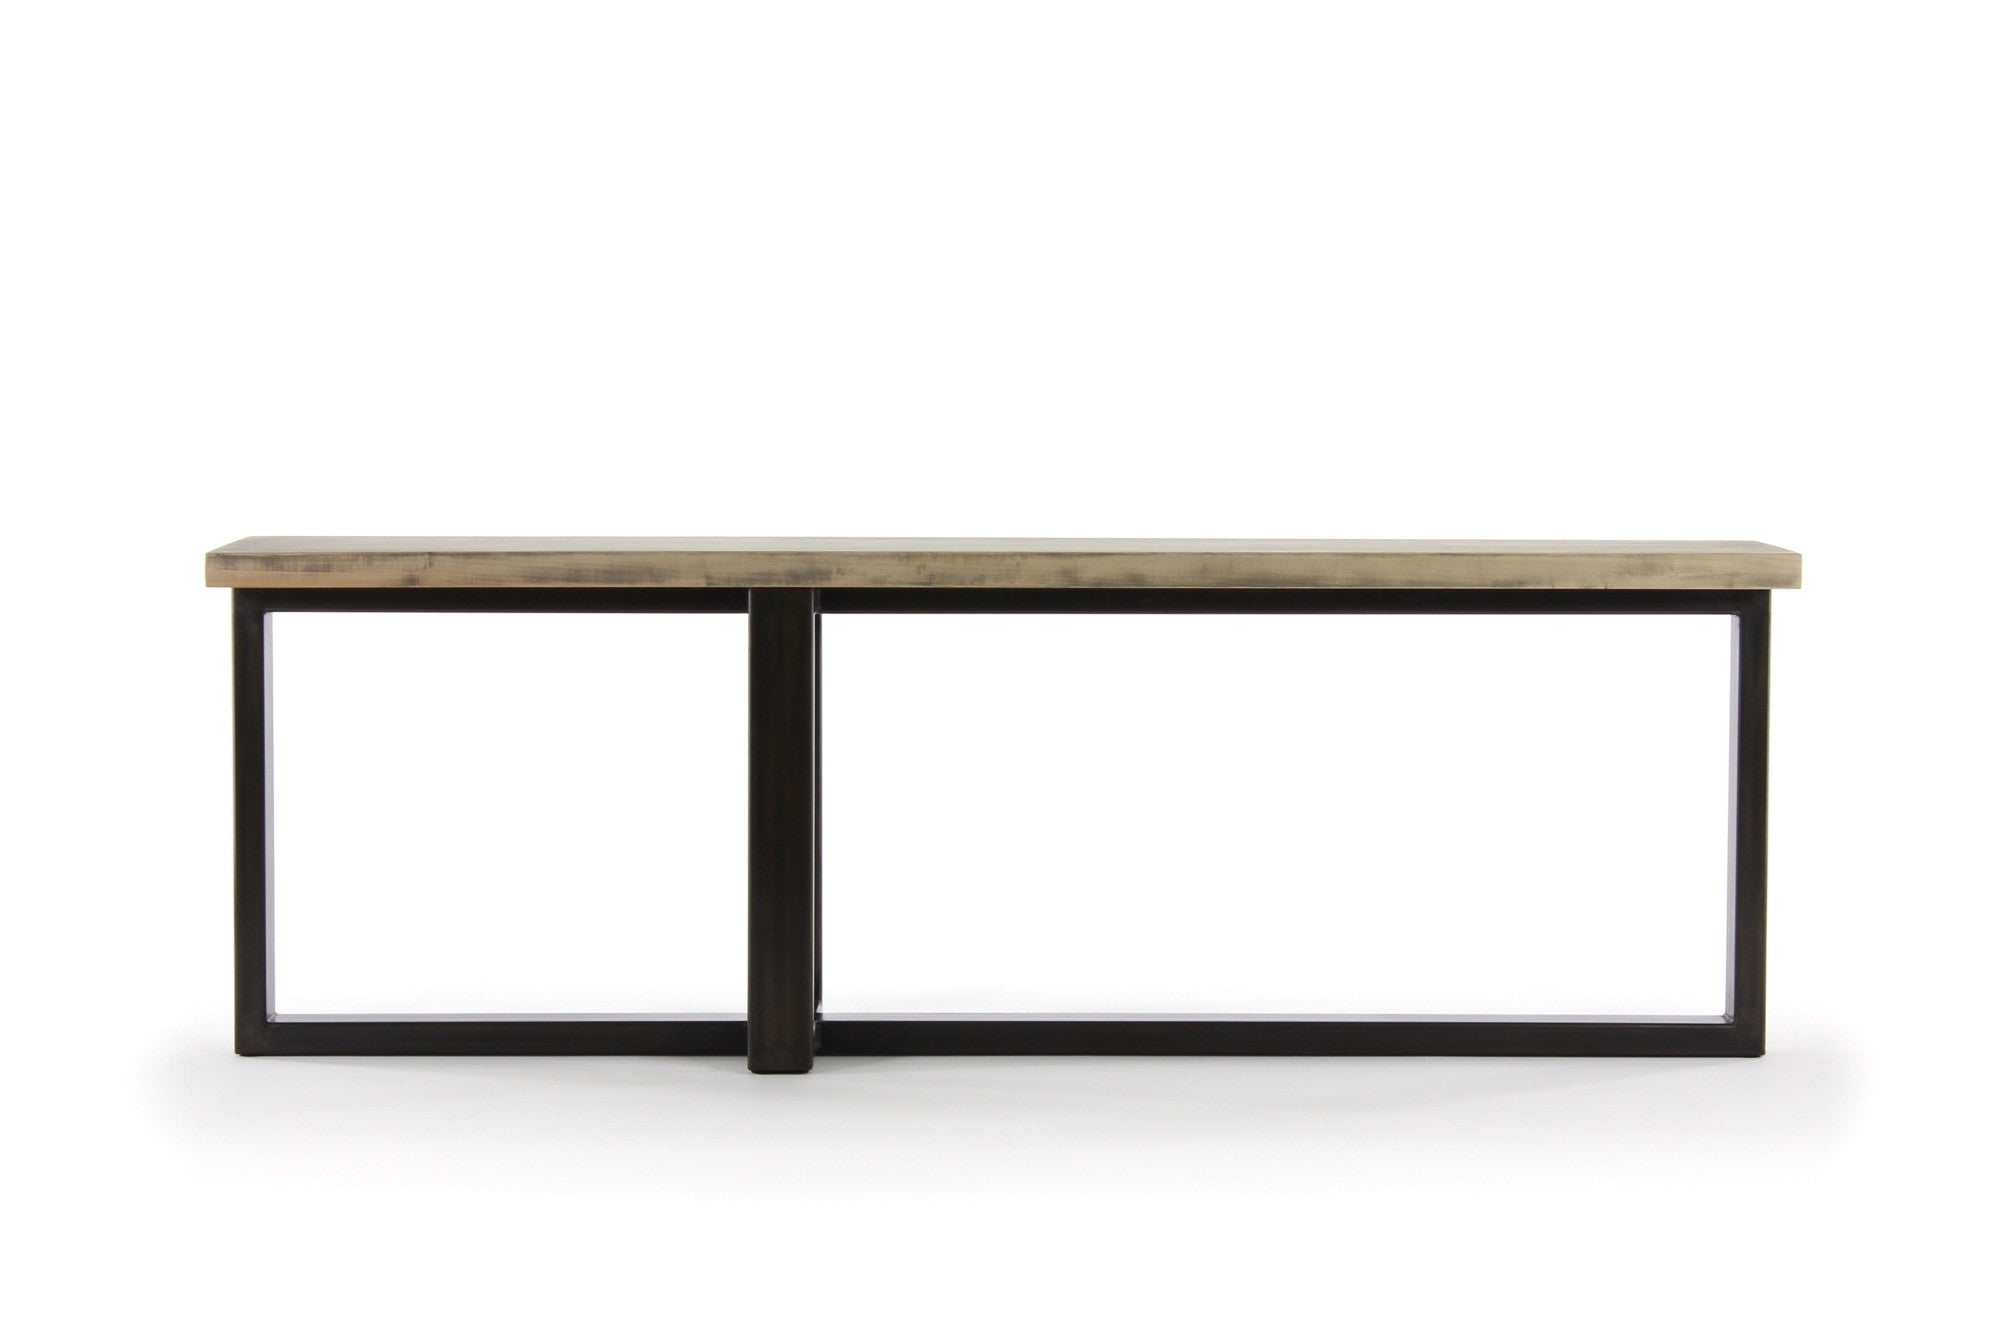 8' concord console table | worn maple wood finish with darkened steel